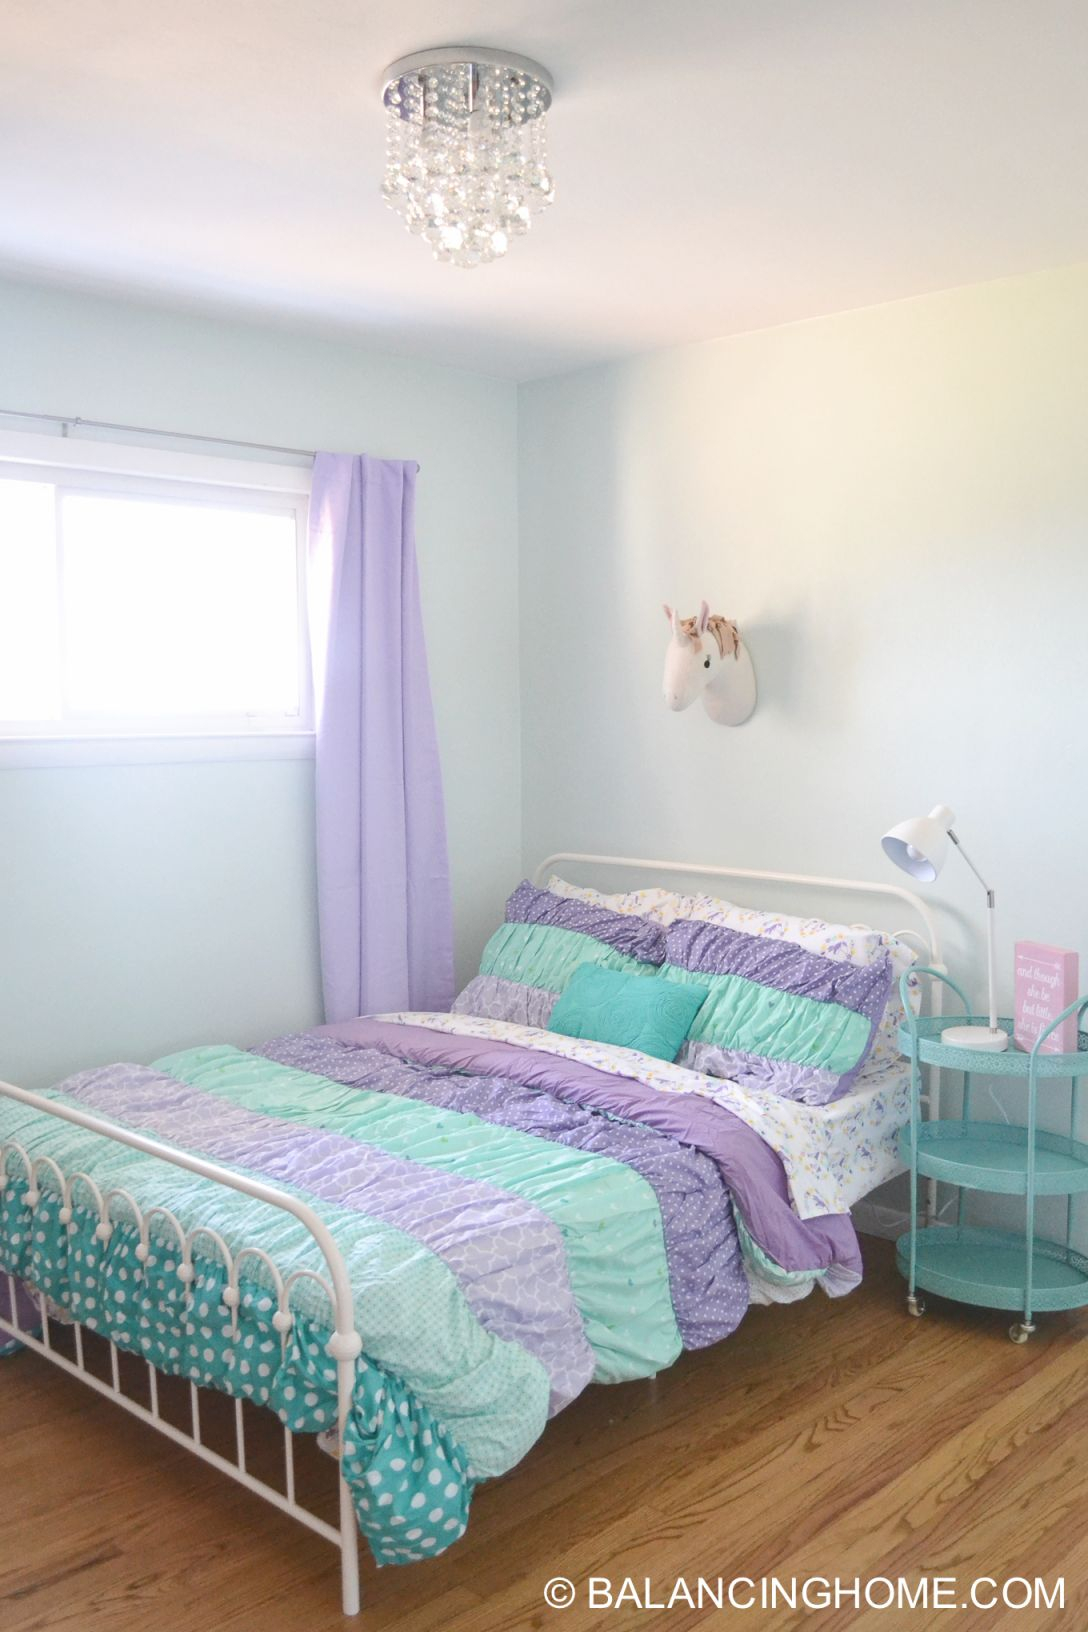 Small Bedroom Decor & Bedroom Decorating Ideas - Balancing Home throughout Elegant Small Bedroom Decorating Ideas